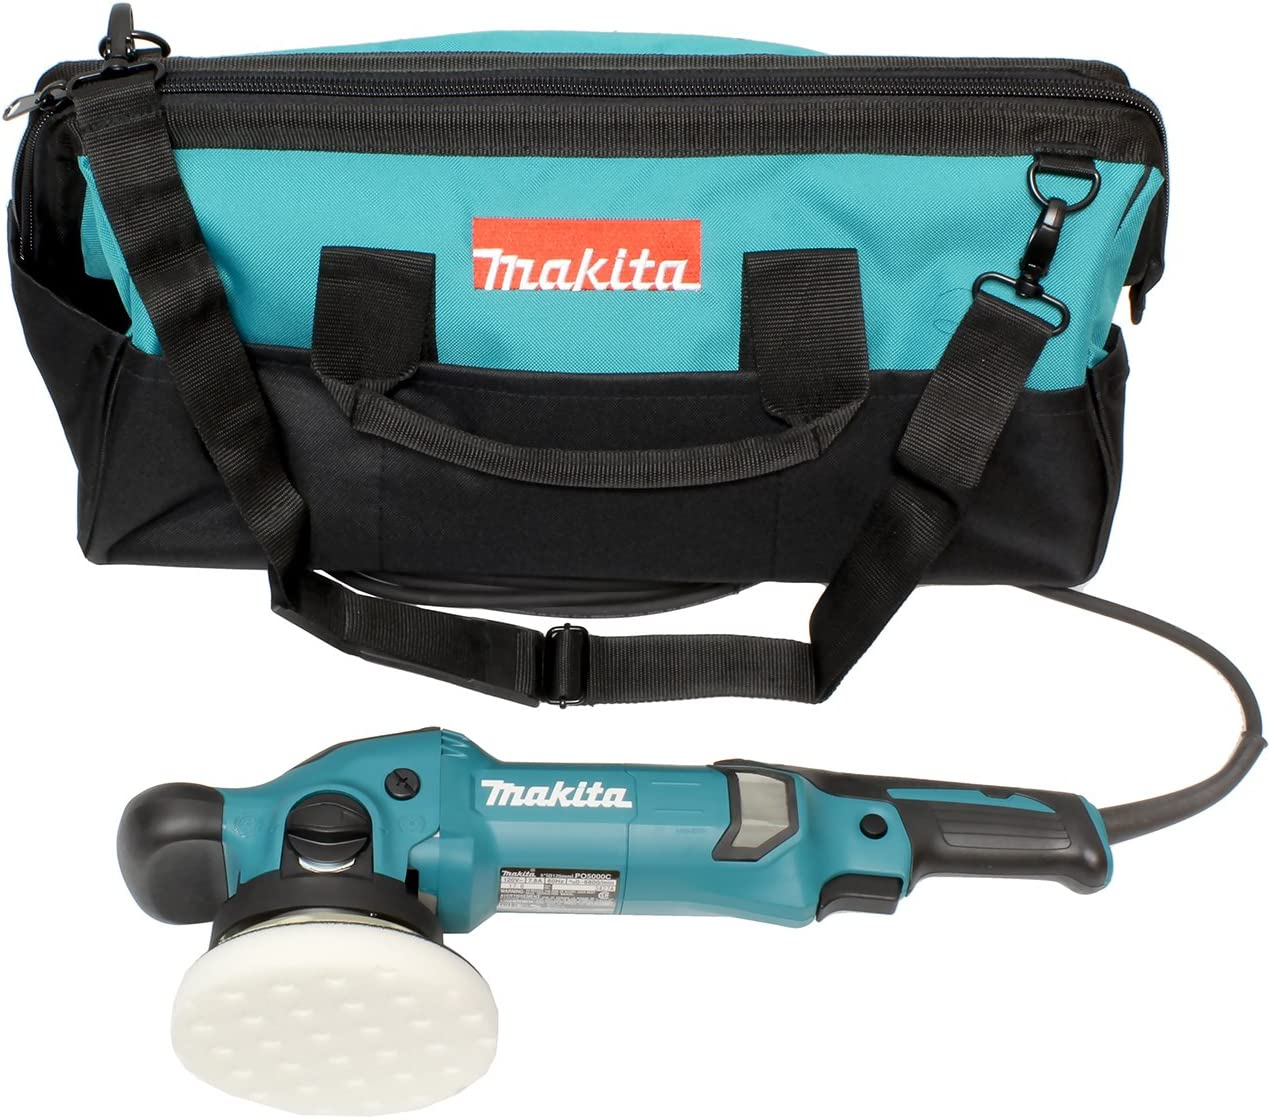 Makita PO5000CX1 5 Dual Action Random Orbit Polisher